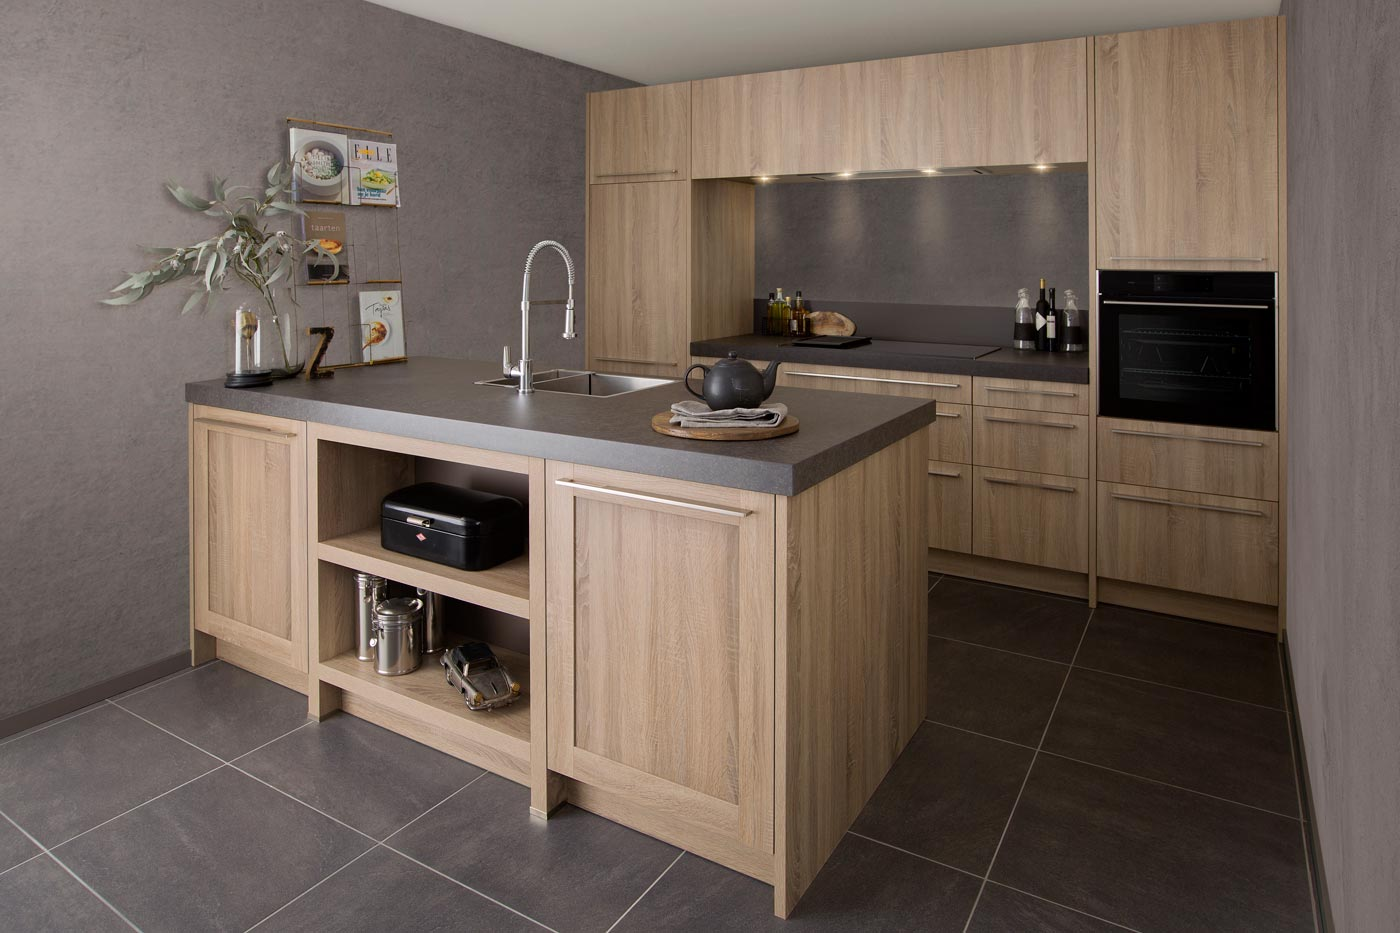 Wooden kitchen Elba Cascada washed oak